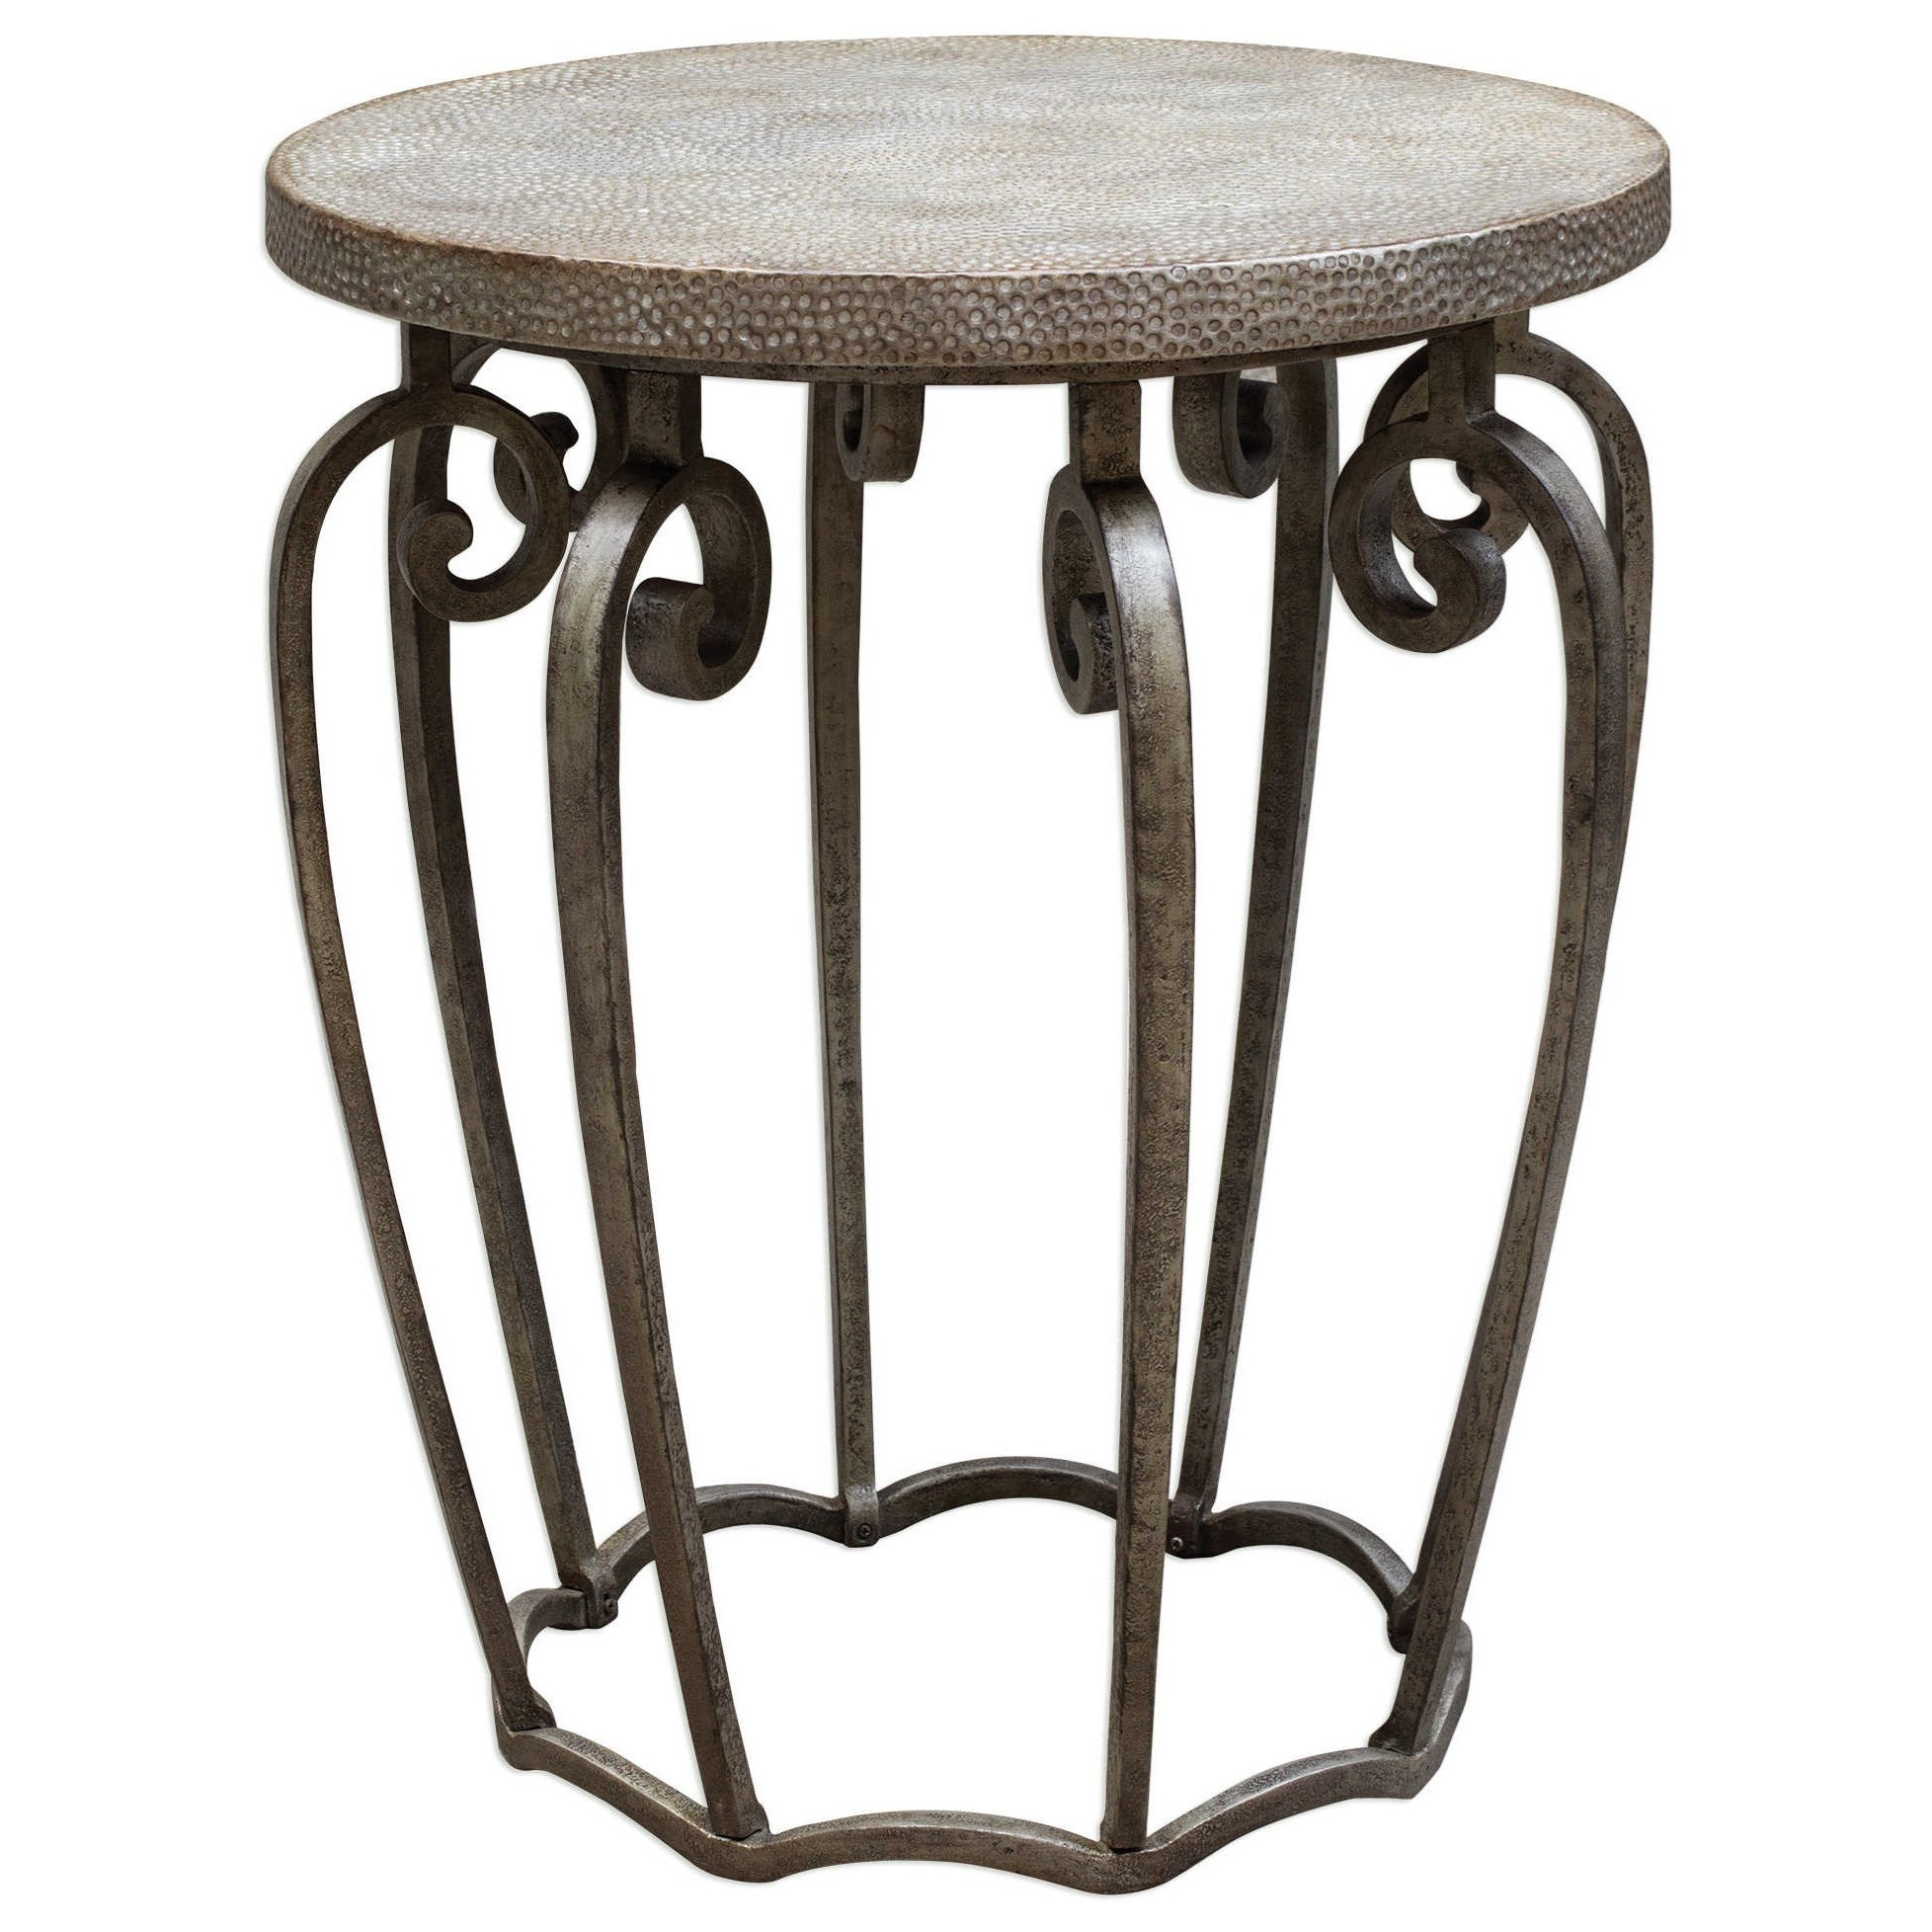 Uttermost Accent Furniture Anina Hammered Iron Accent Table - Item Number: 25769